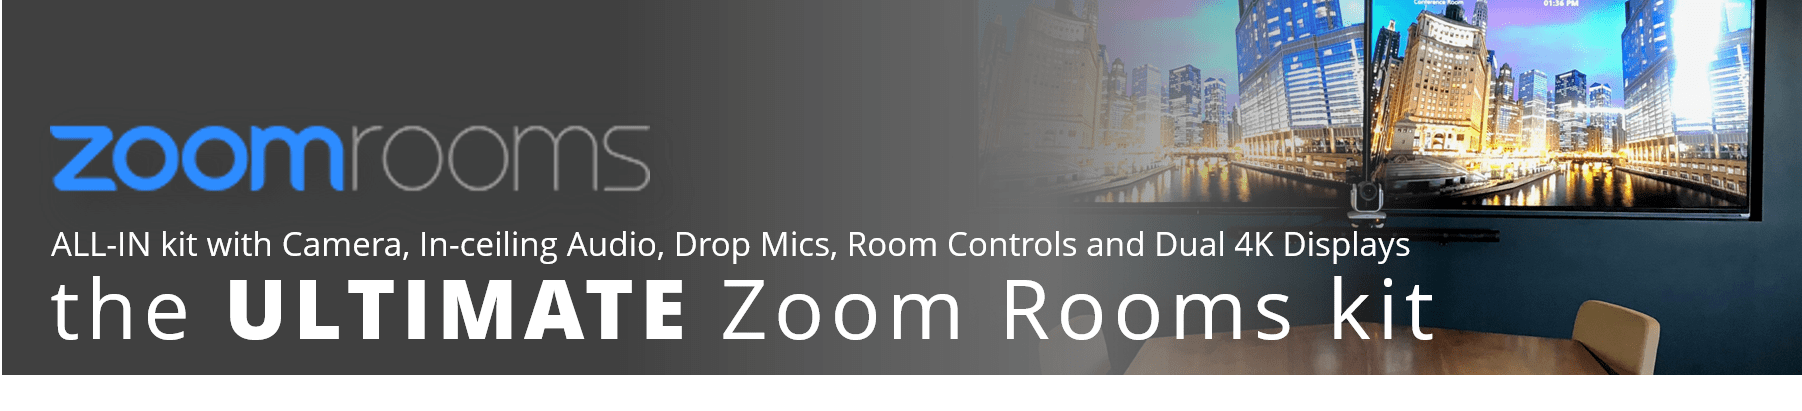 Zoom Rooms Kit from VCGear.com